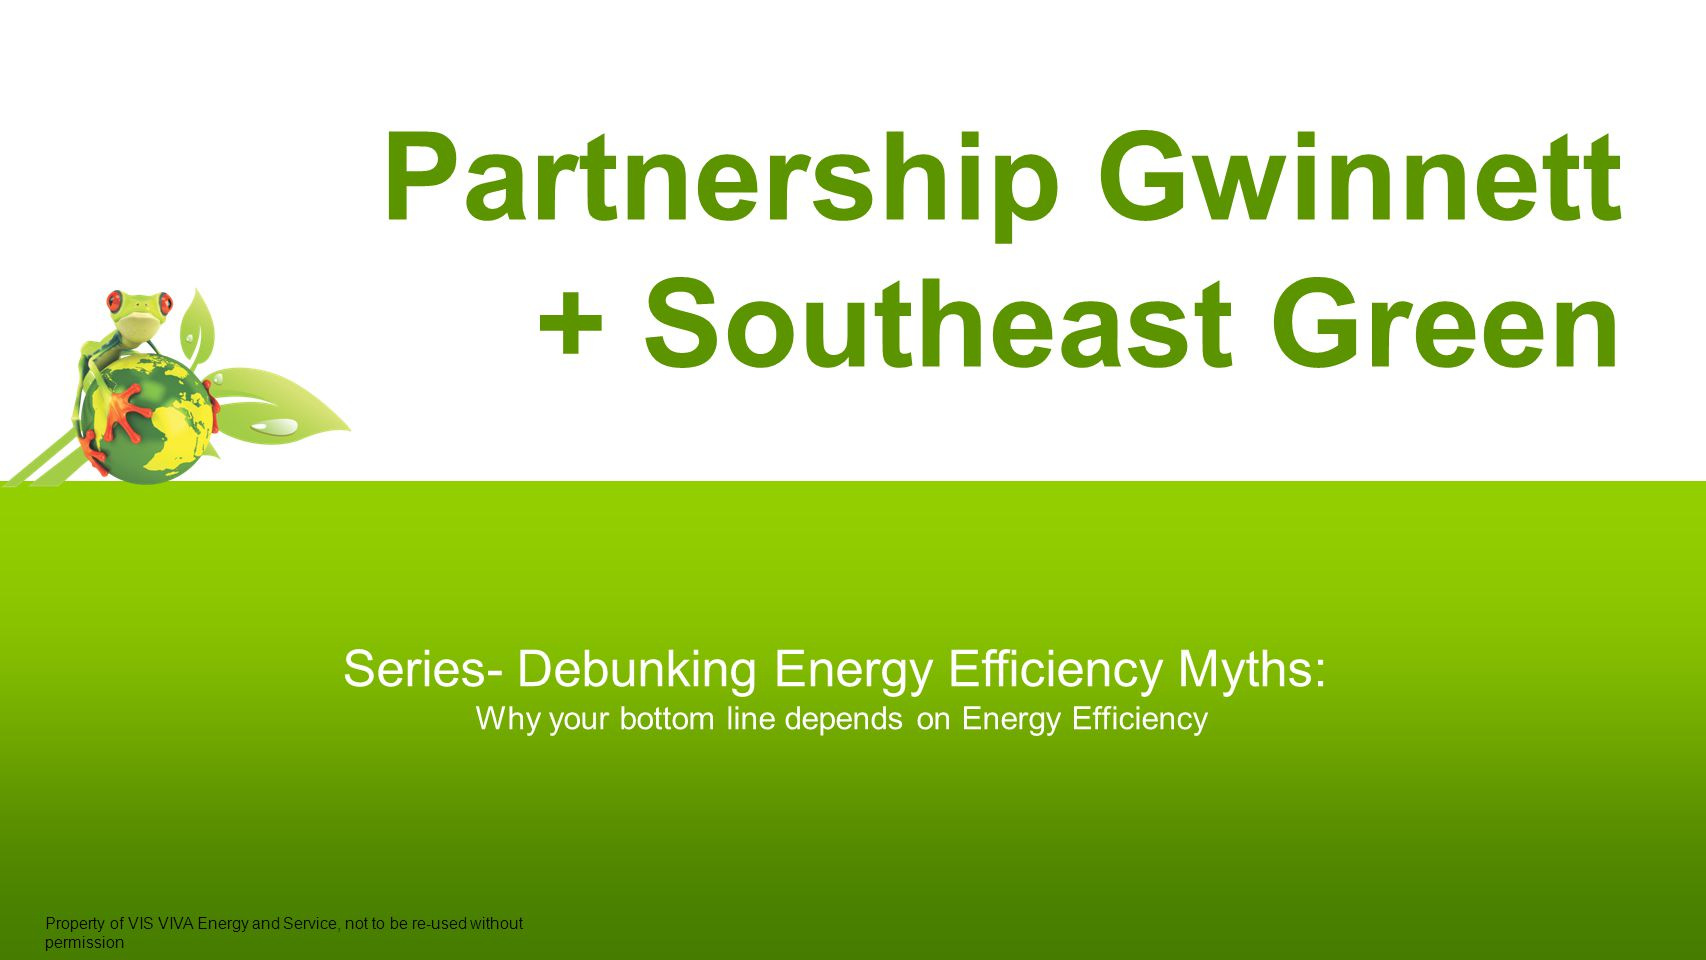 Partnership Gwinnett + Southeast Green Series- Debunking Energy Efficiency Myths: Why your bottom line depends on Energy Efficiency Property of VIS VIVA Energy and Service, not to be re-used without permission